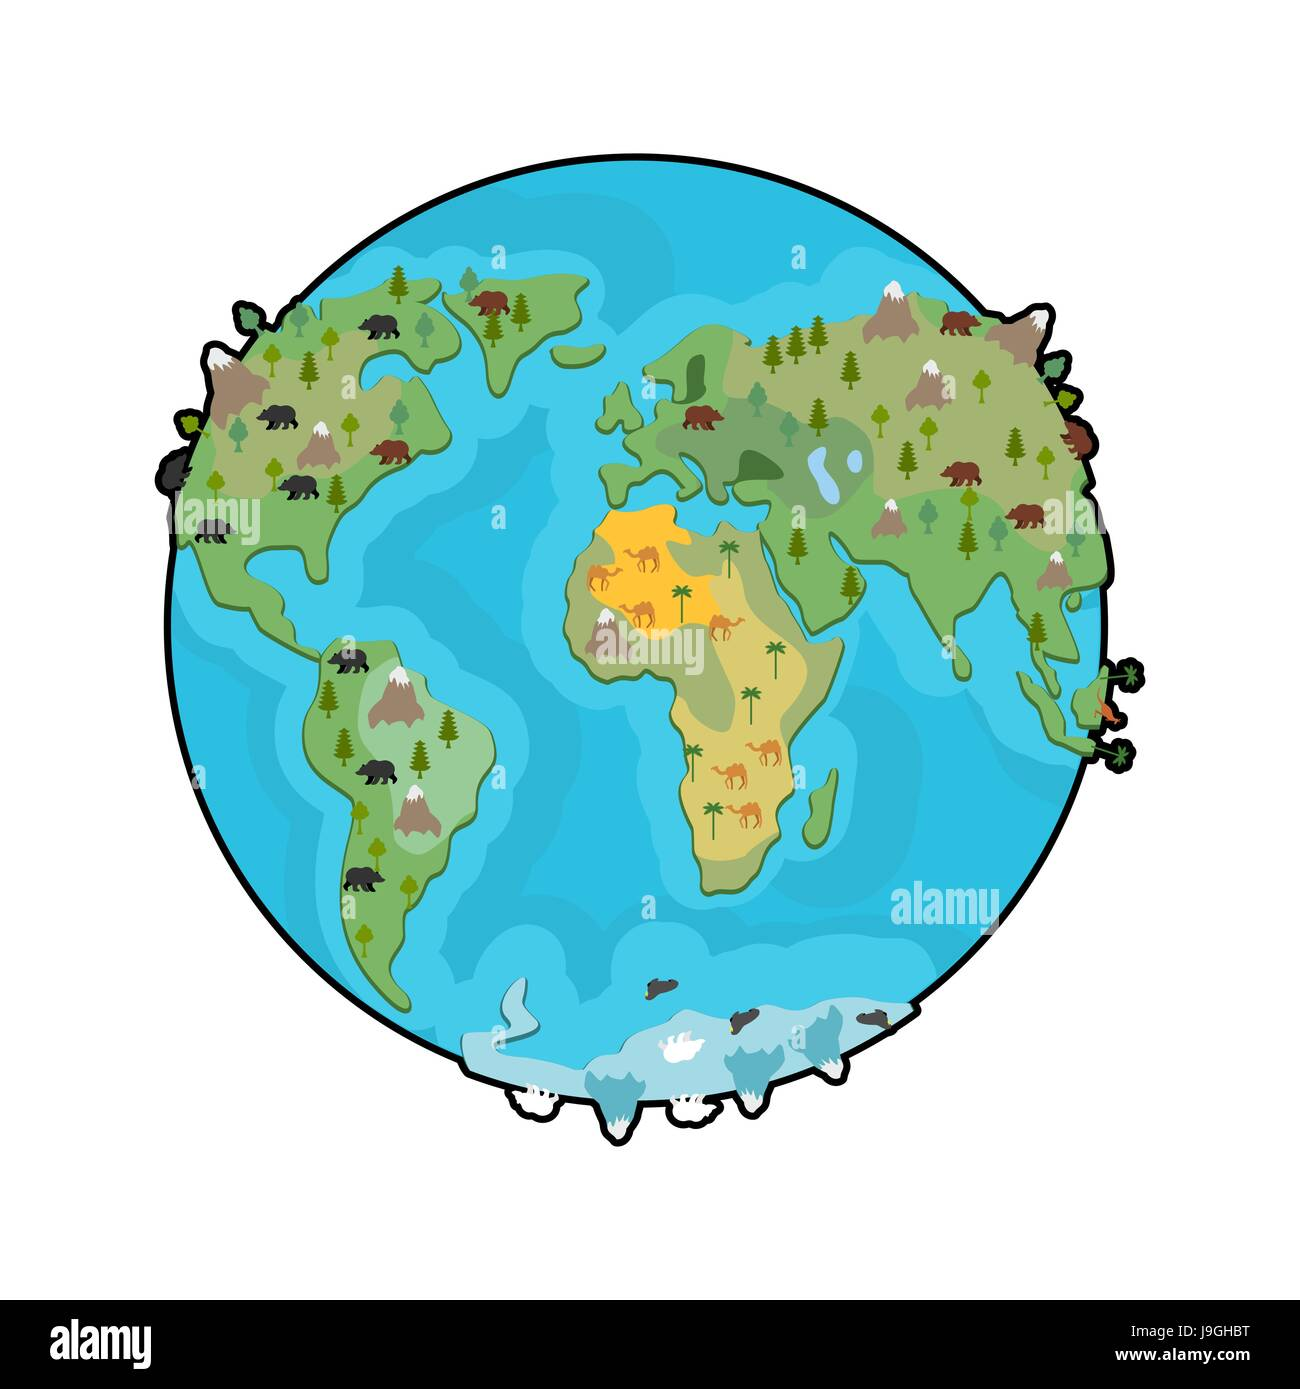 Planet earth and animals beast on continents world map stock planet earth and animals beast on continents world map geographical globe with wildlife gumiabroncs Gallery